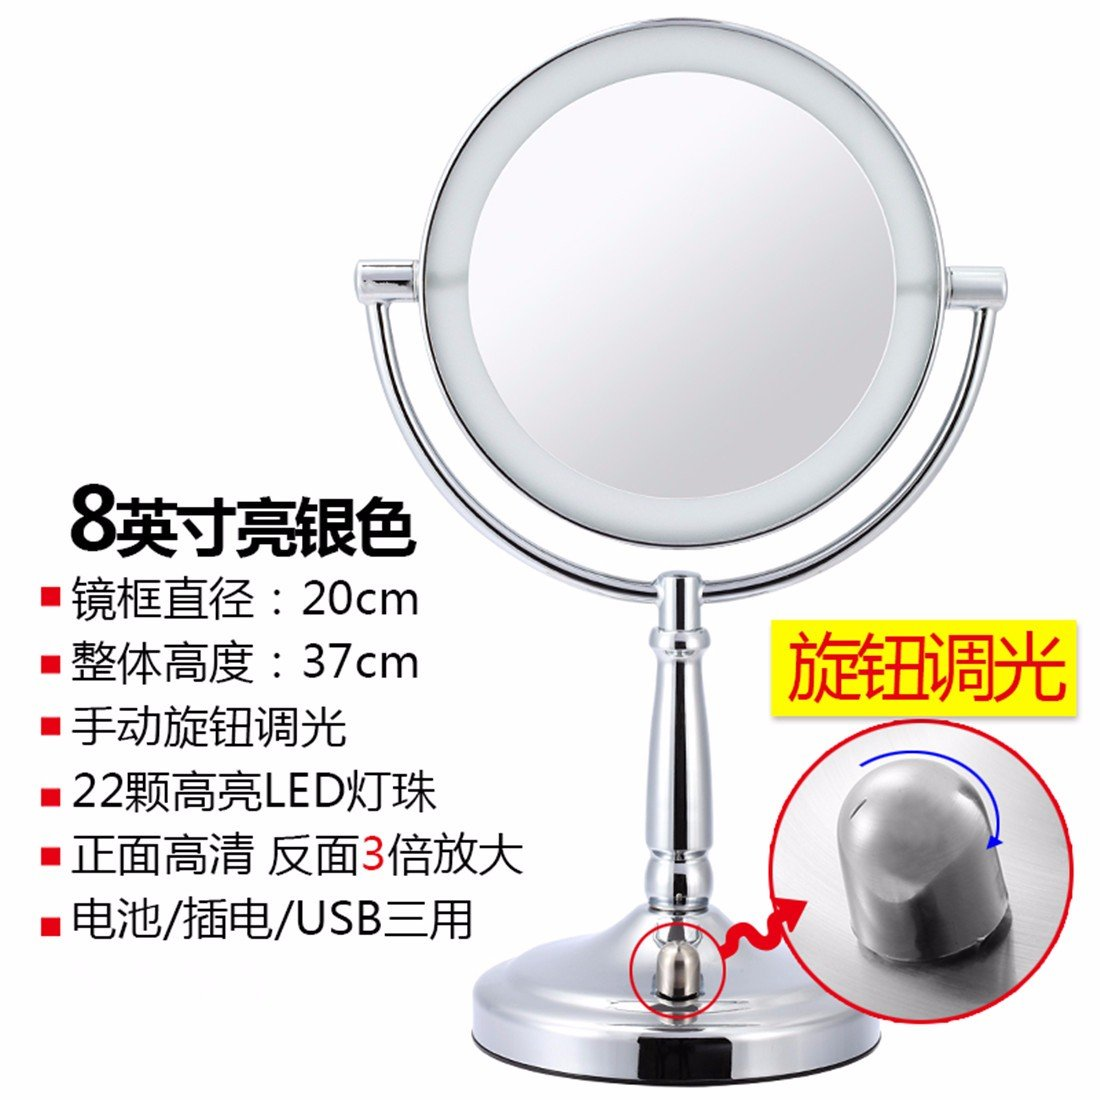 STAZSX Leds make-up mirror desktop continental with light vanity mirror princess beauty mirror creative Tunable Optical mirrors ,8 in White Silver (3 , x magnification)